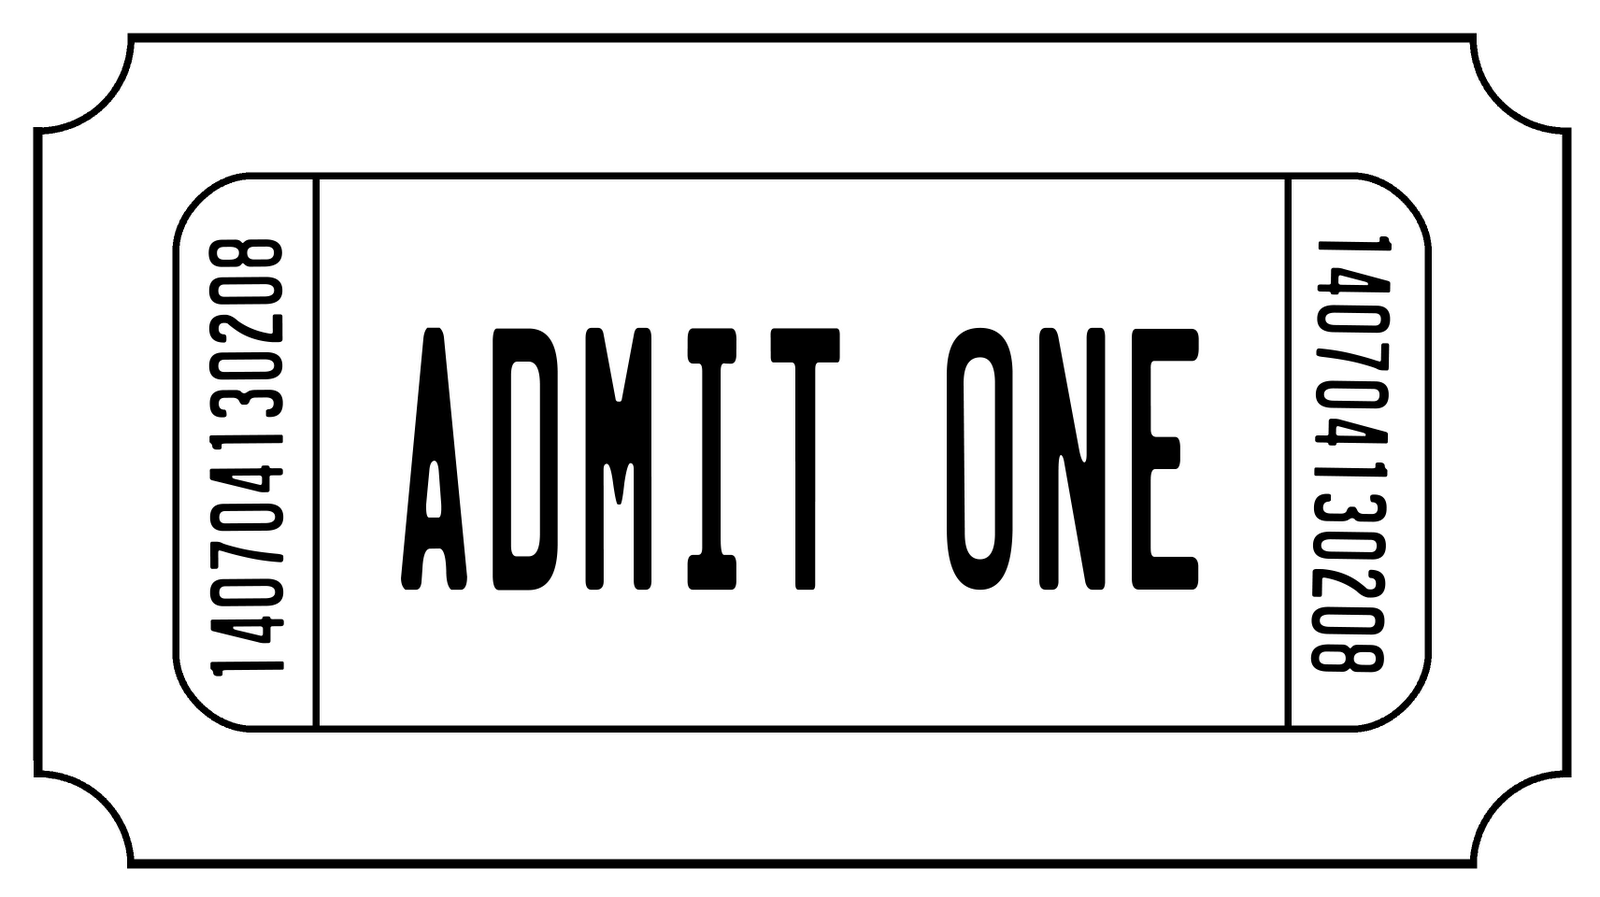 TICKET-STUB.png (PNG Image, 1600 × 897 pixels) - Scaled (69%) | DIY ...